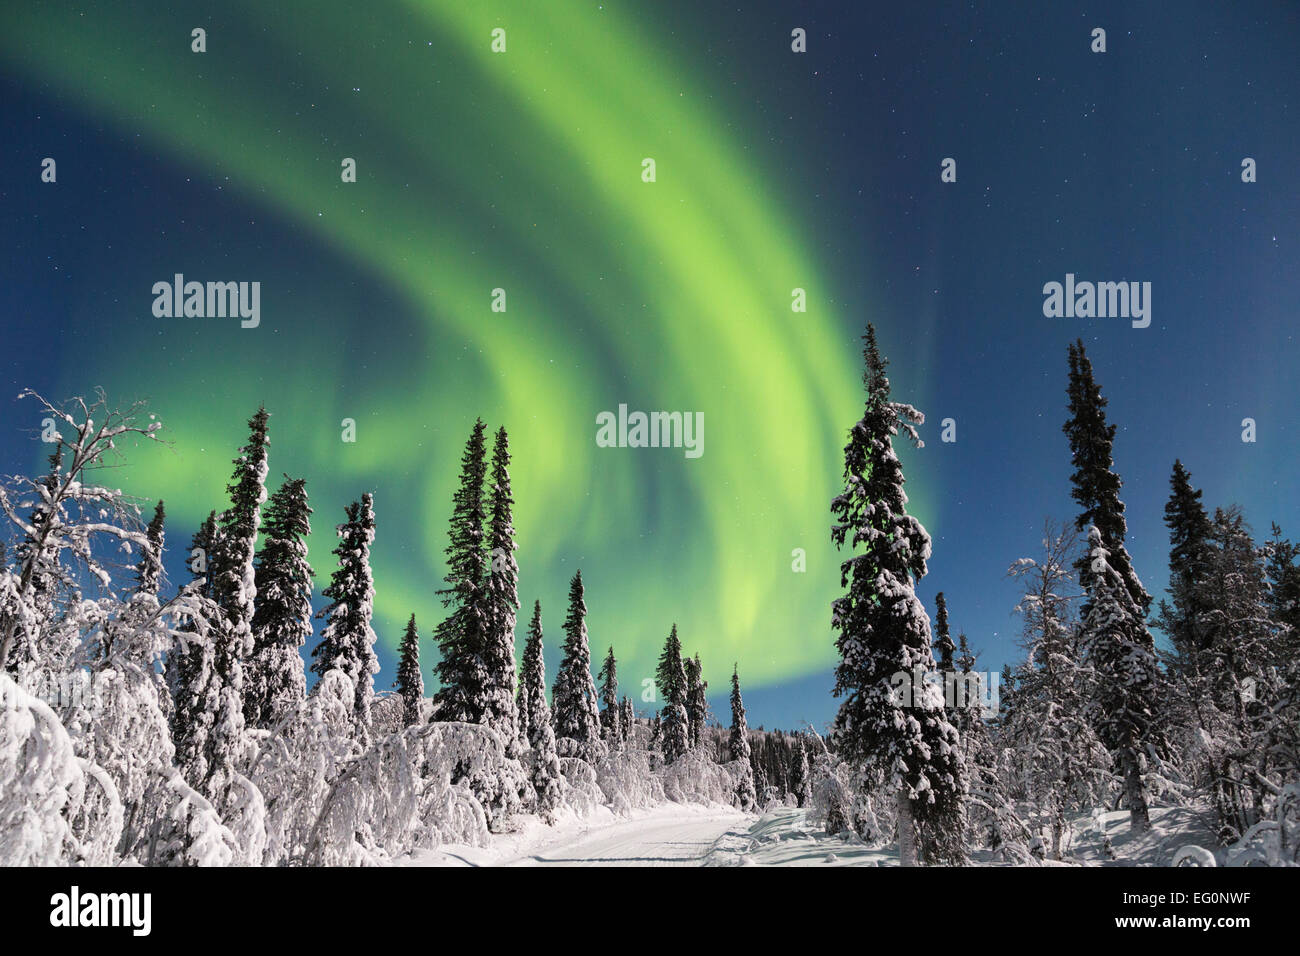 Northern light, Aurora borealis and moonlight  over winter forest and winter road, Gällivare, Sweden, Swedish - Stock Image